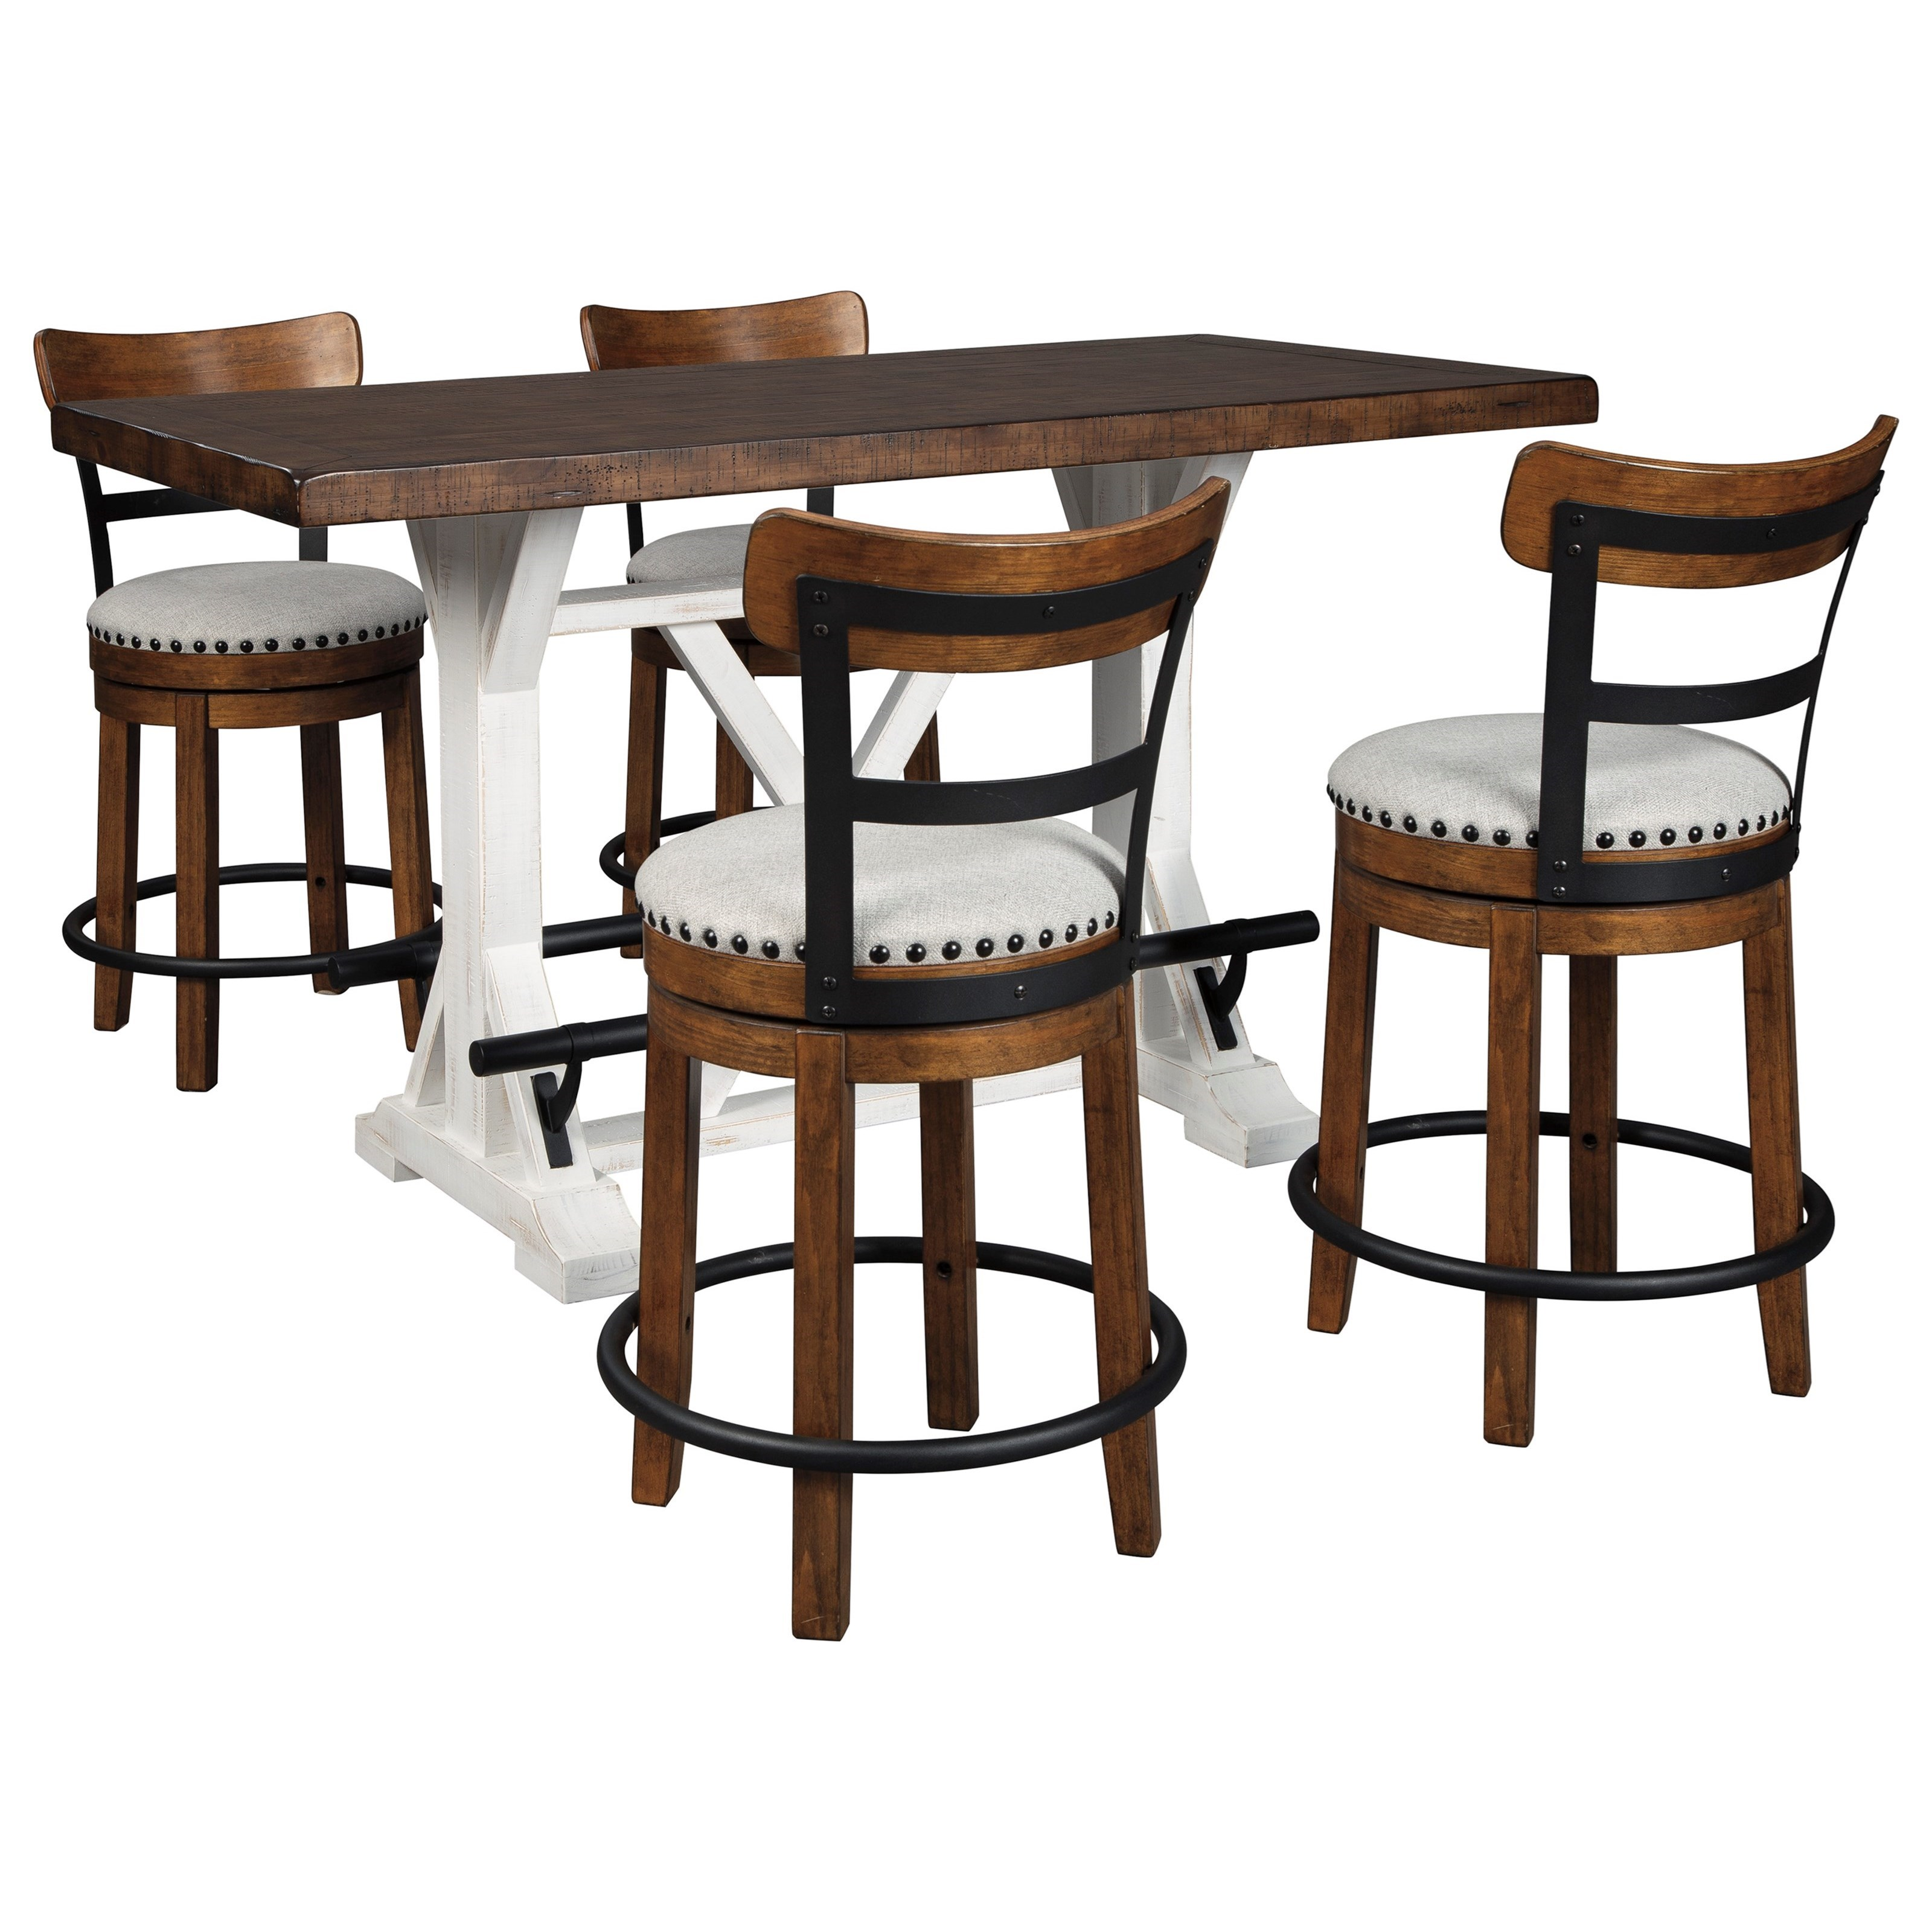 Signature Design By Ashley Valebeck 5 Piece Counter Height Table Set Standard Furniture Pub Table And Stool Sets